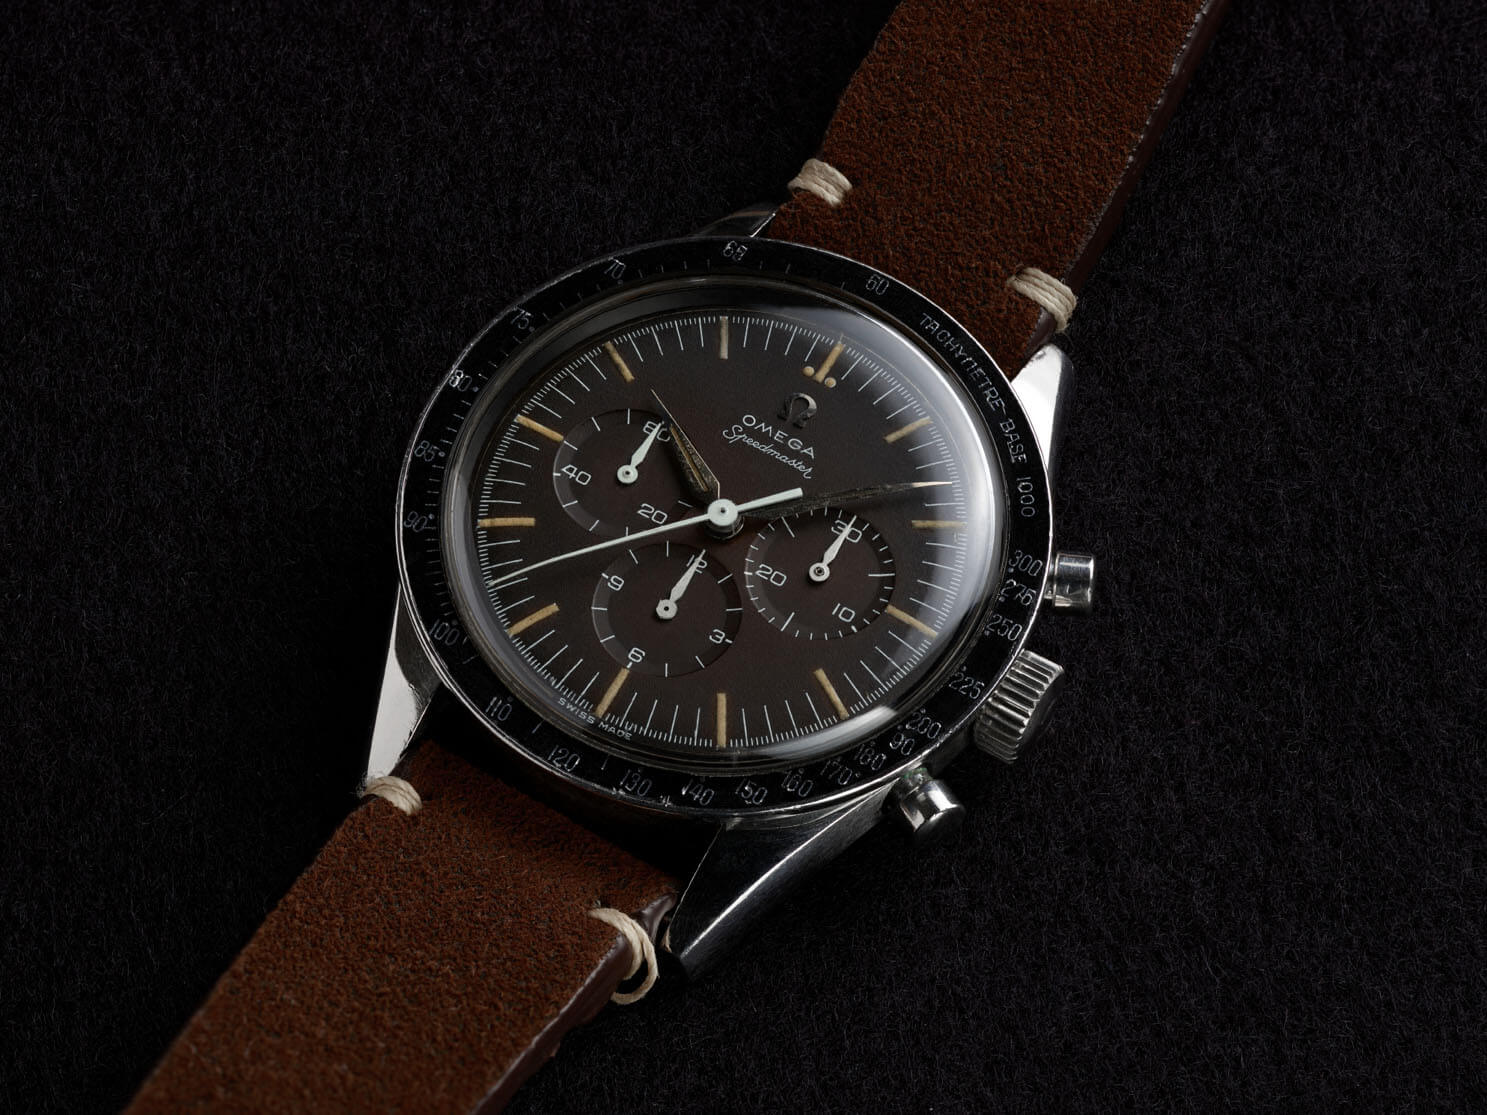 Omega Speedmaster history: in 1958 the speedy had Alpha Hands (photo courtesy of Omega)